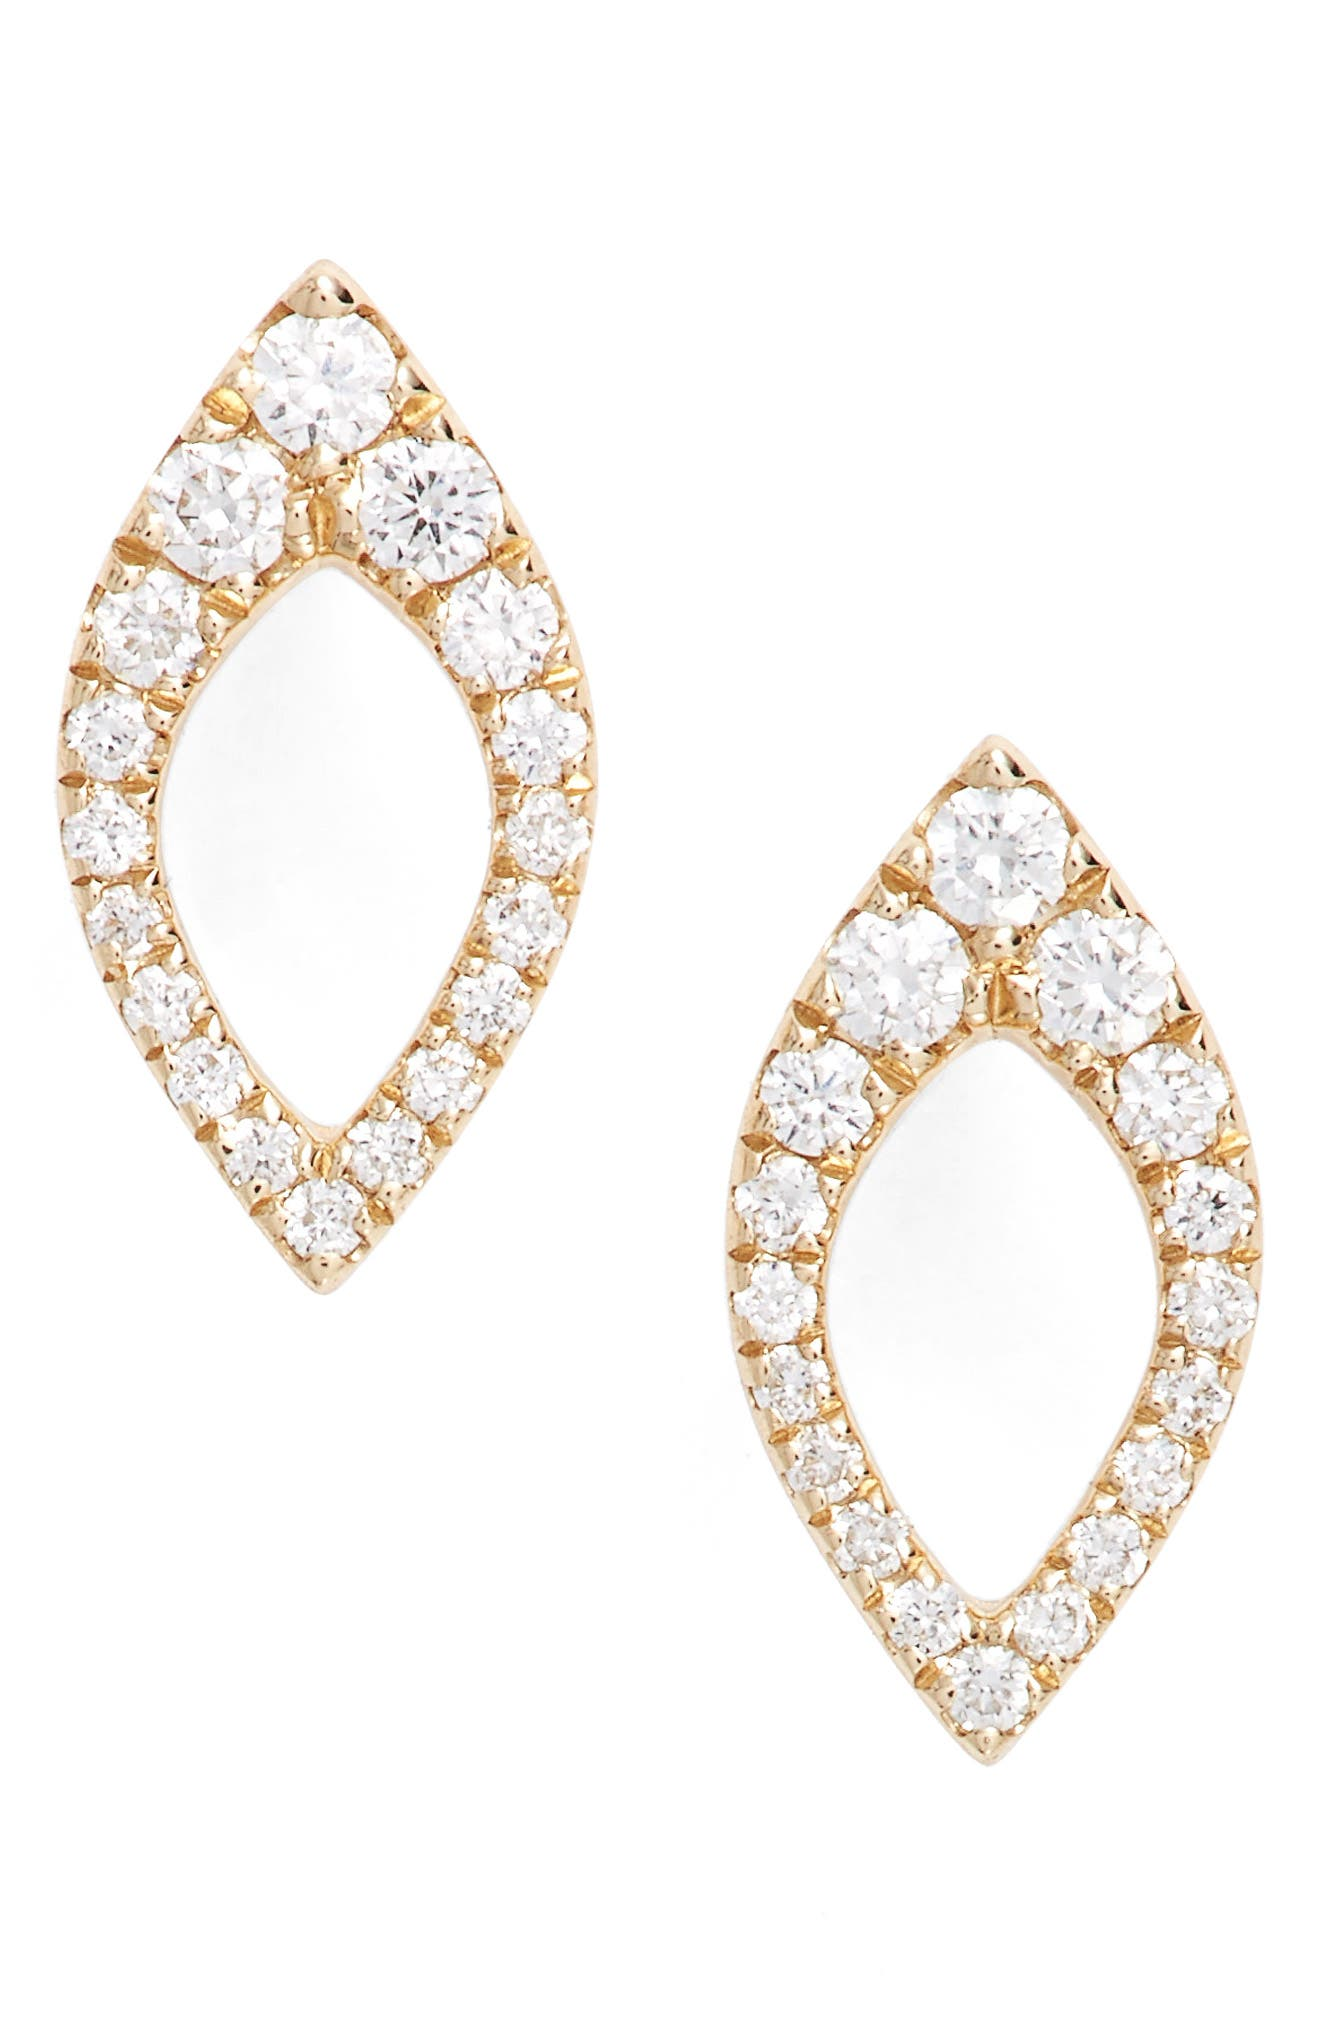 Marquise Diamond Studs,                             Main thumbnail 1, color,                             710